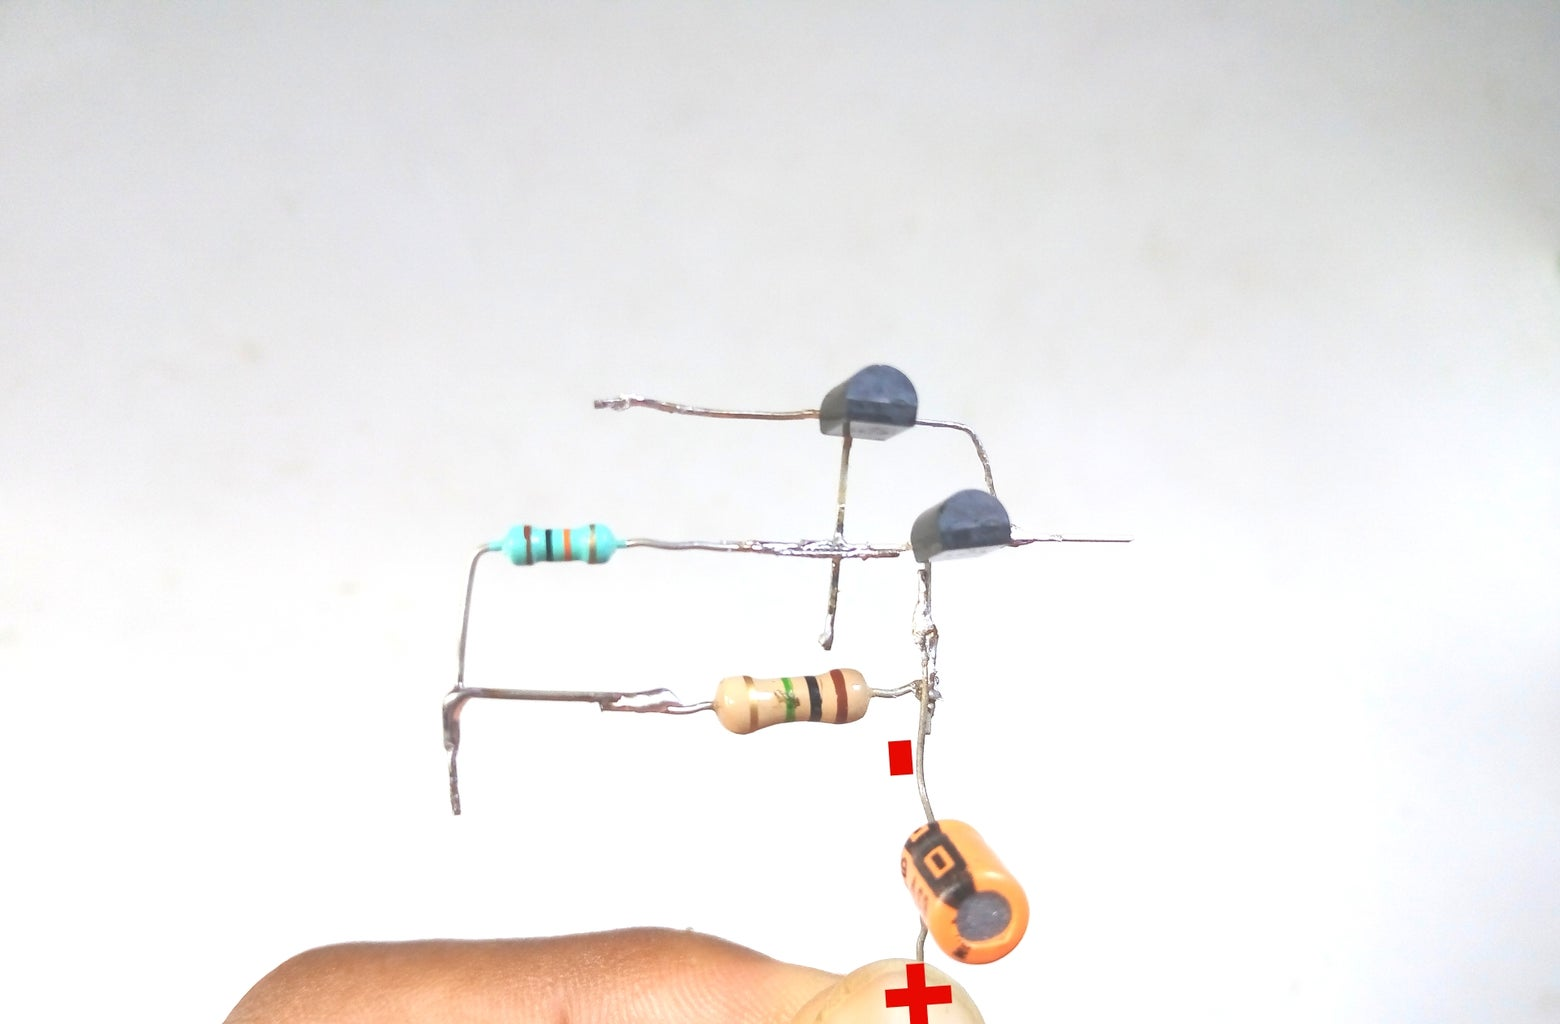 Connect Capacitor